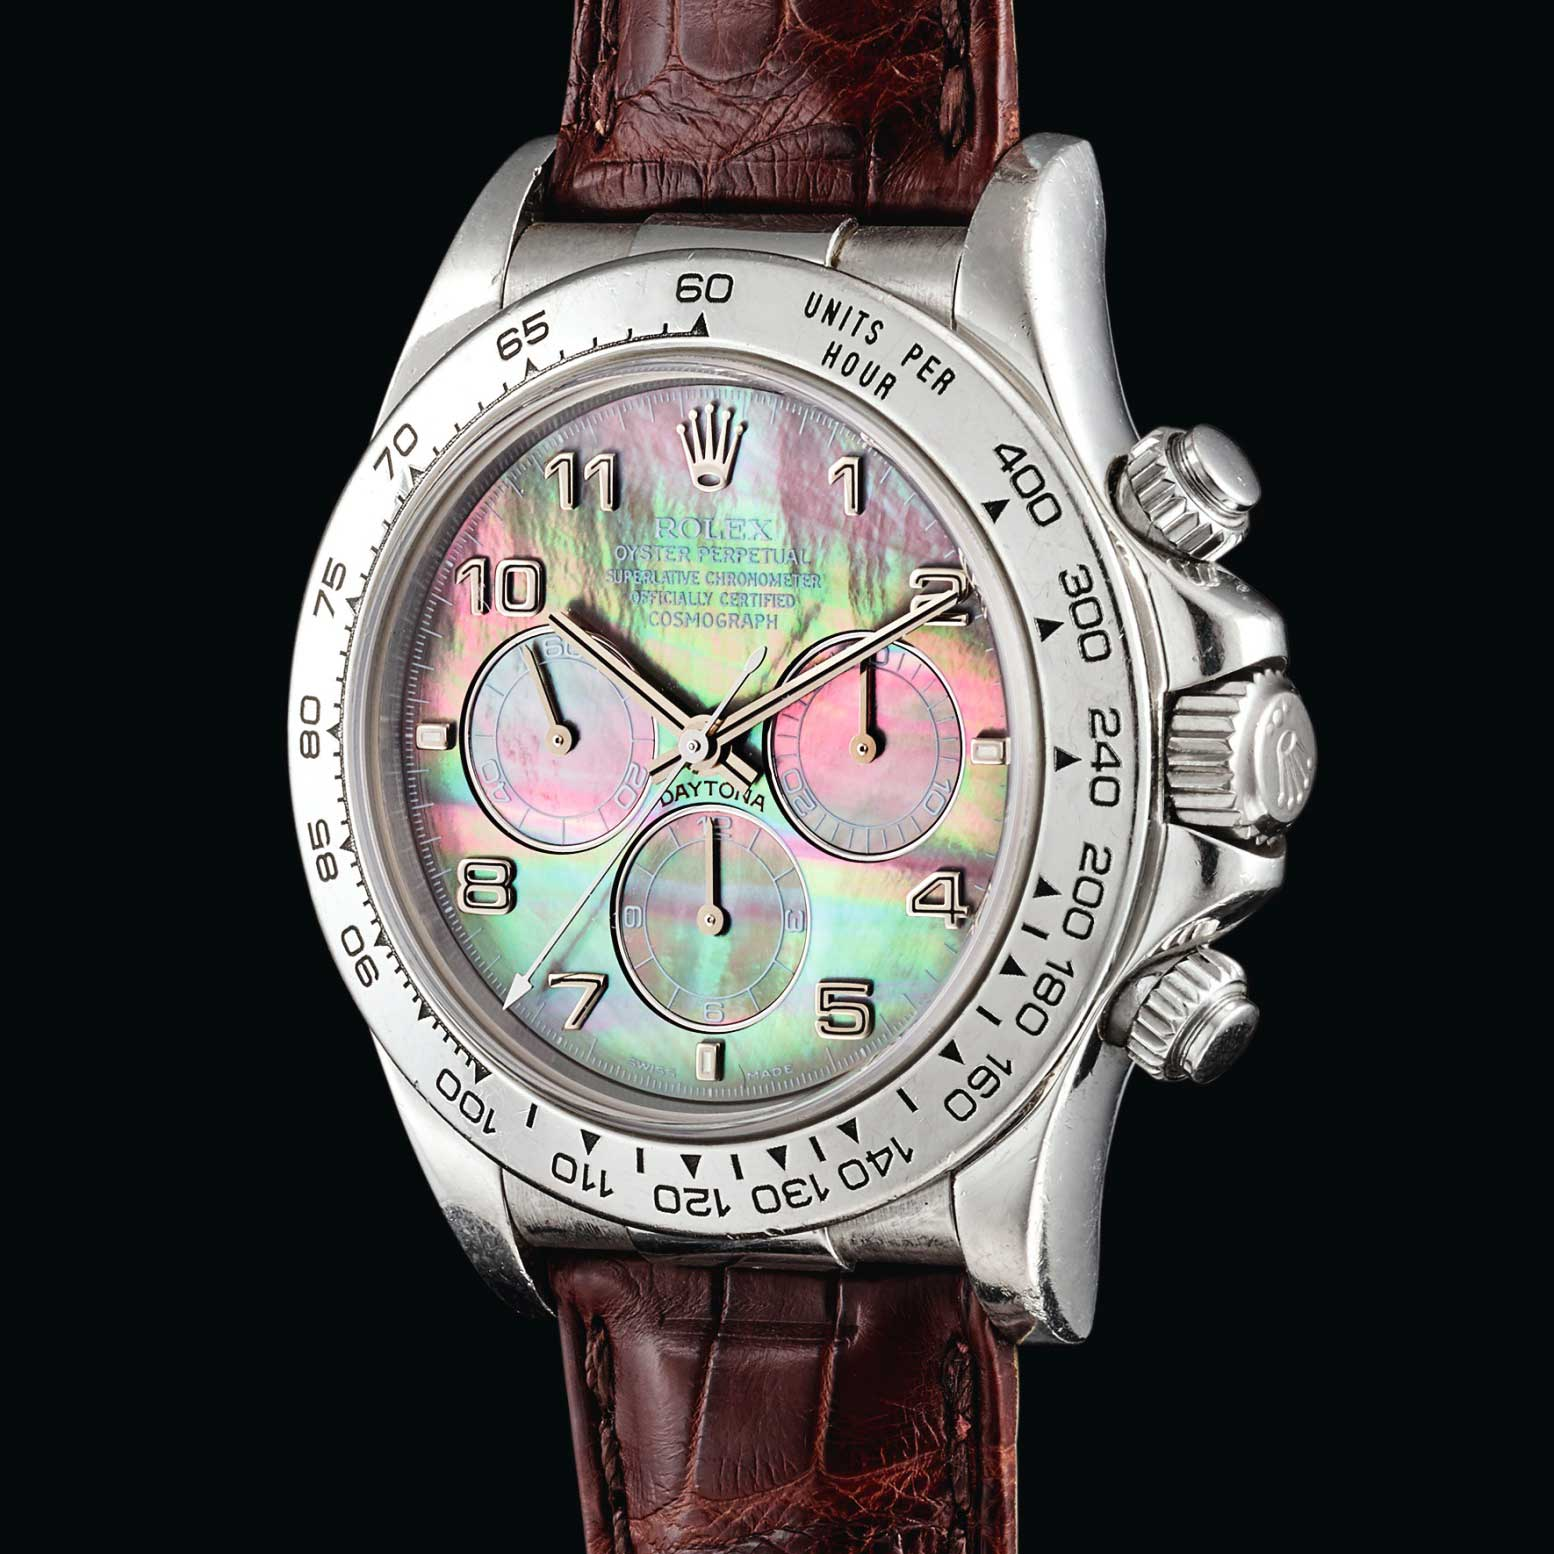 Unique platinum Perpetual Daytona ref 16516 with a mother-of-pearl dial; ;ast seen with Sotheby's in 2018 at their October sale in Hong Kong